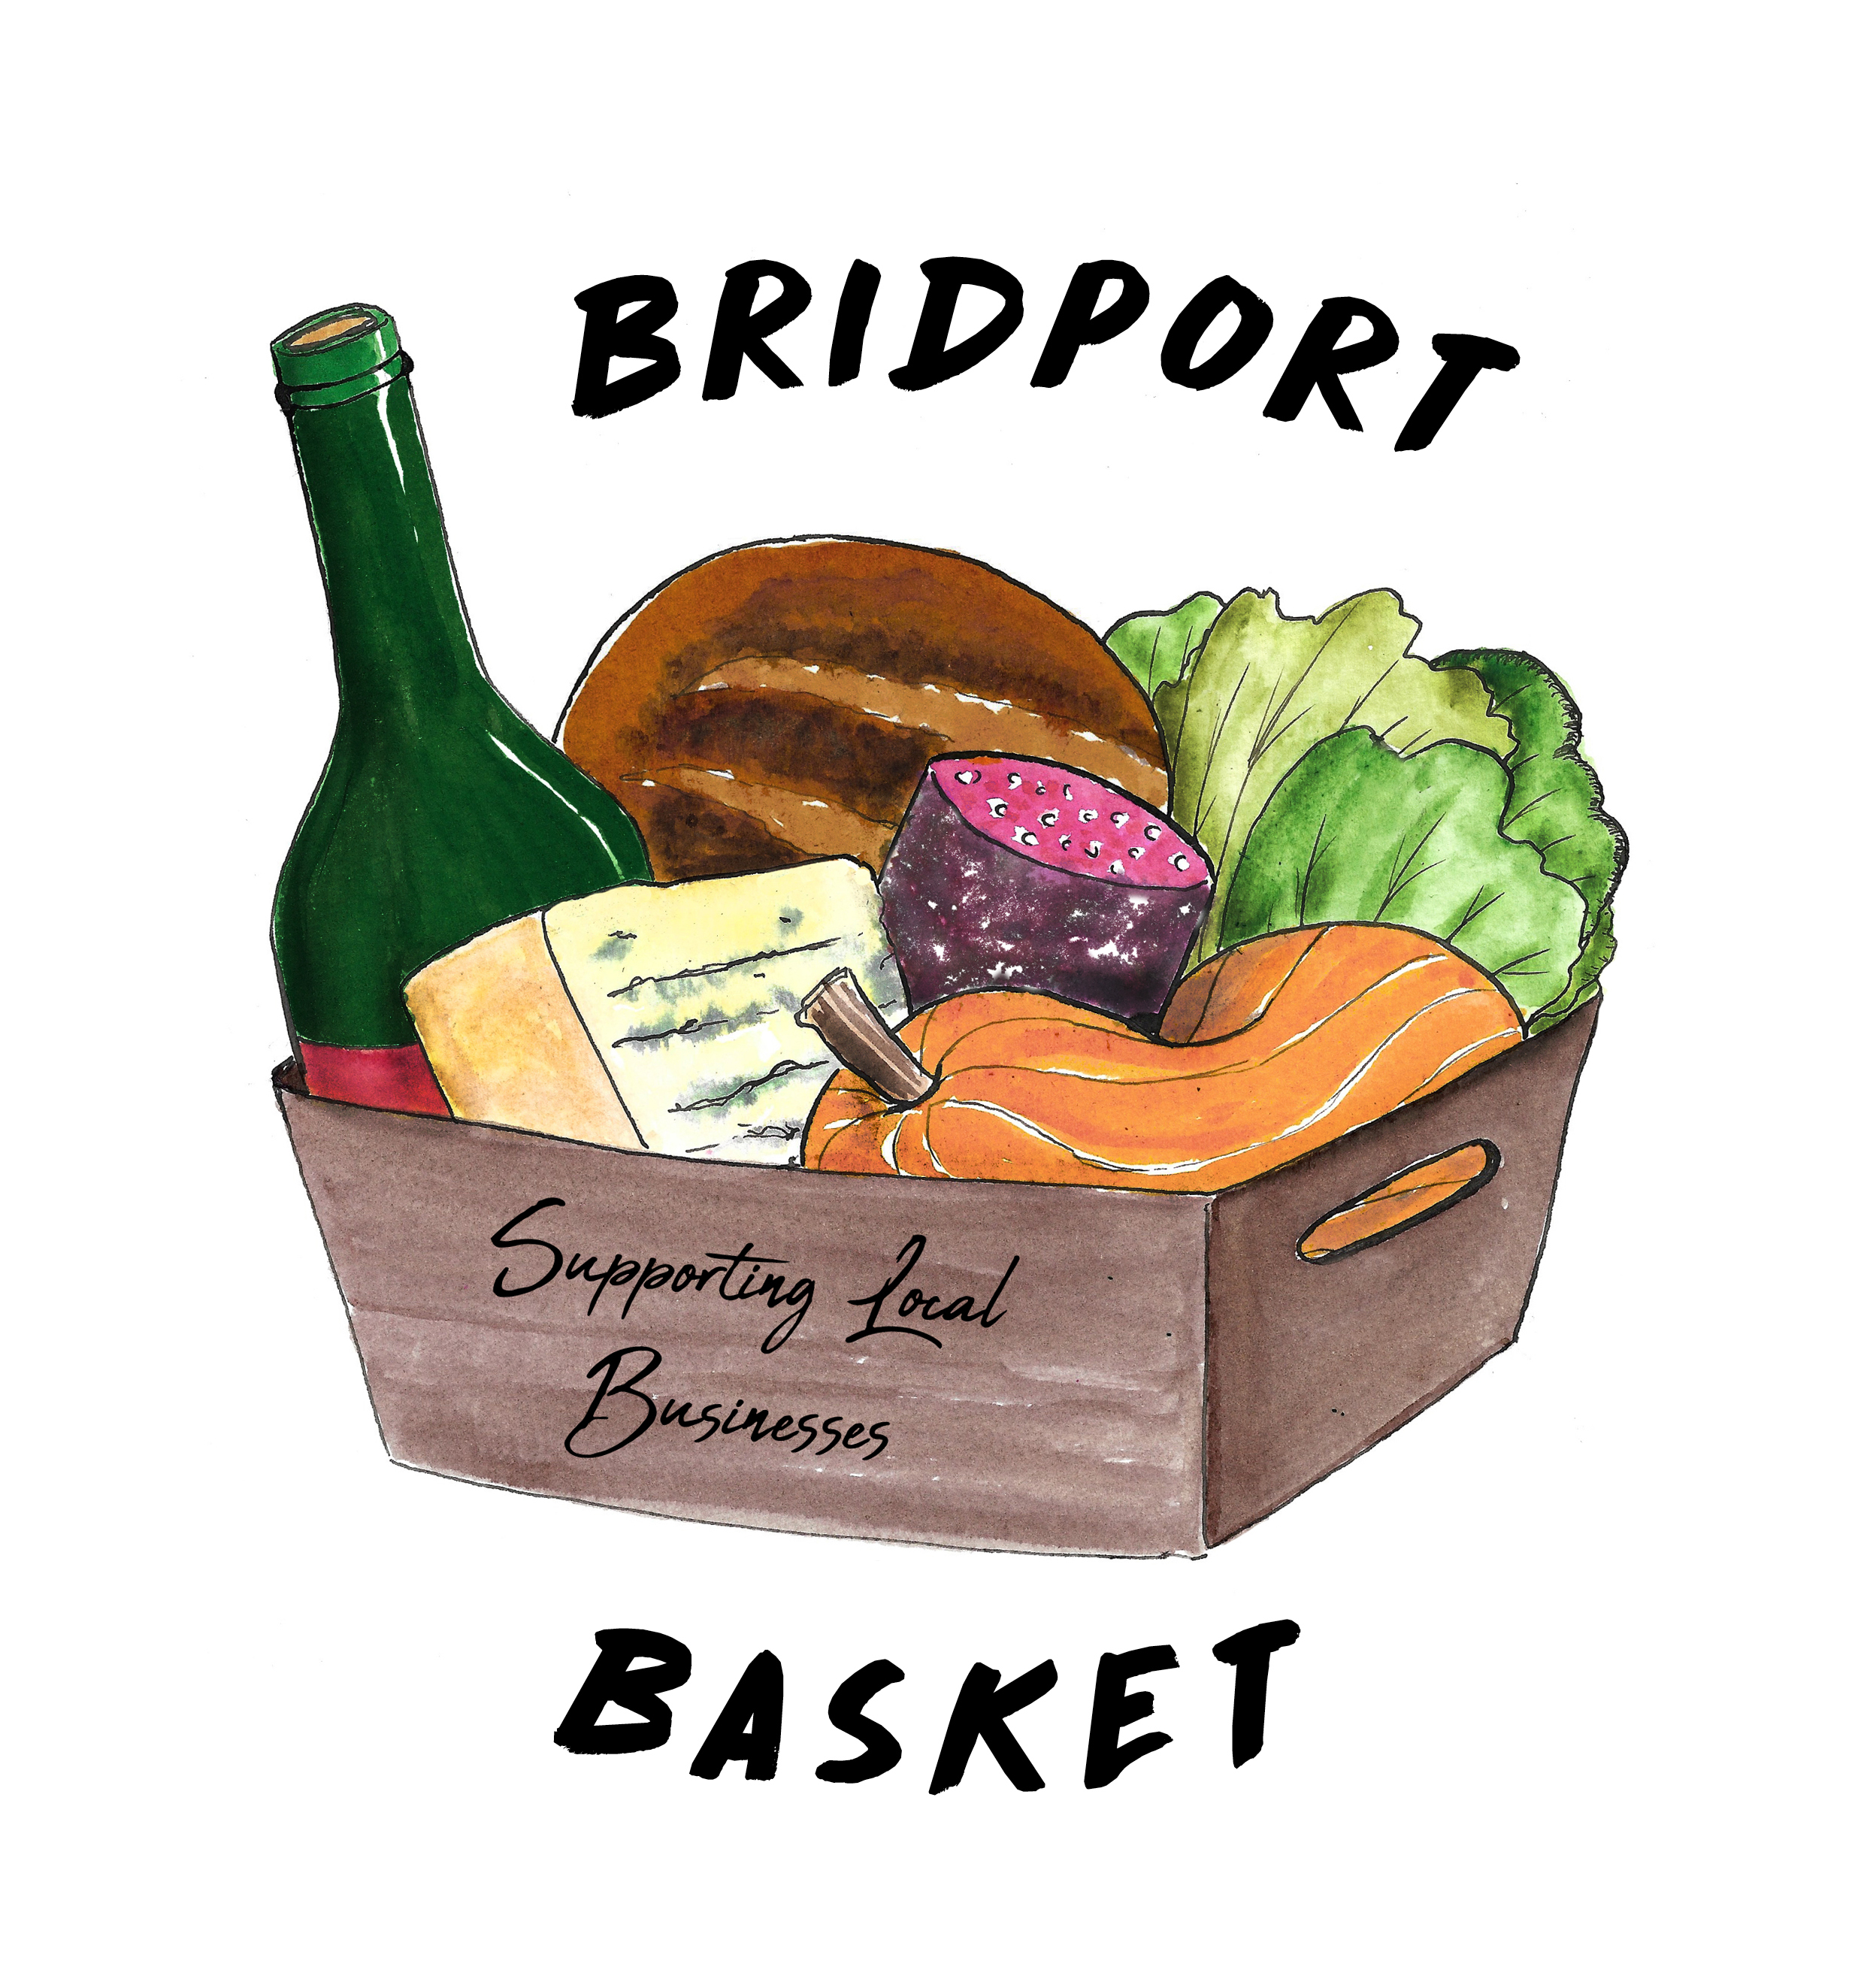 The Bridport Basket